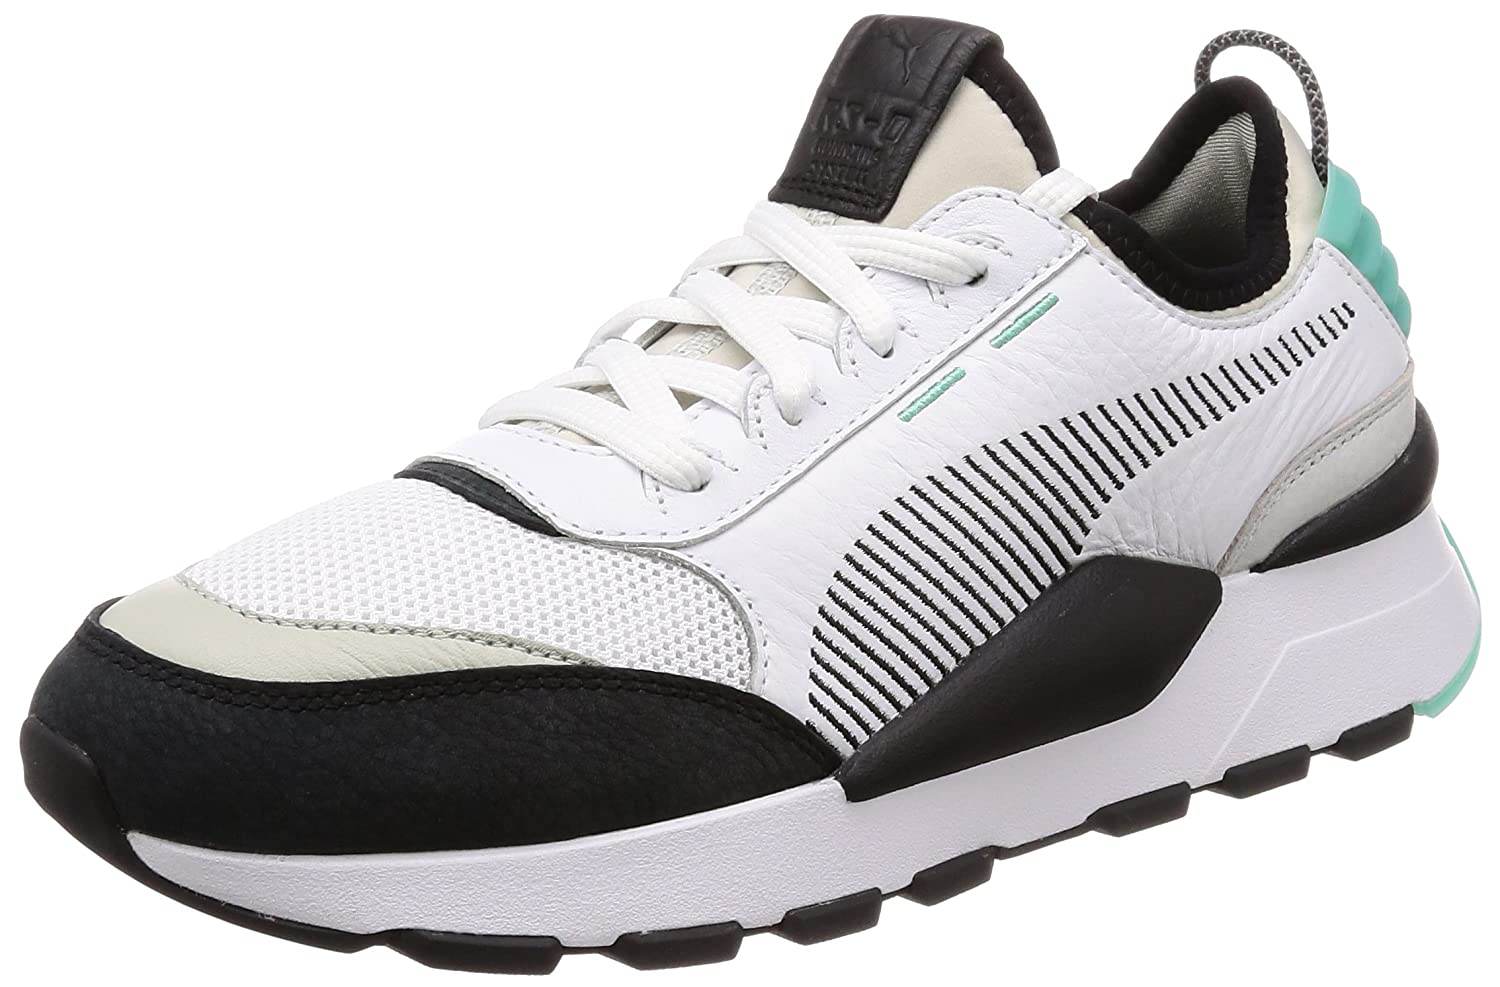 magasin en ligne e9bbc 3f993 Amazon.com | PUMA RS-0 Re-Invention Running System (36688701 ...